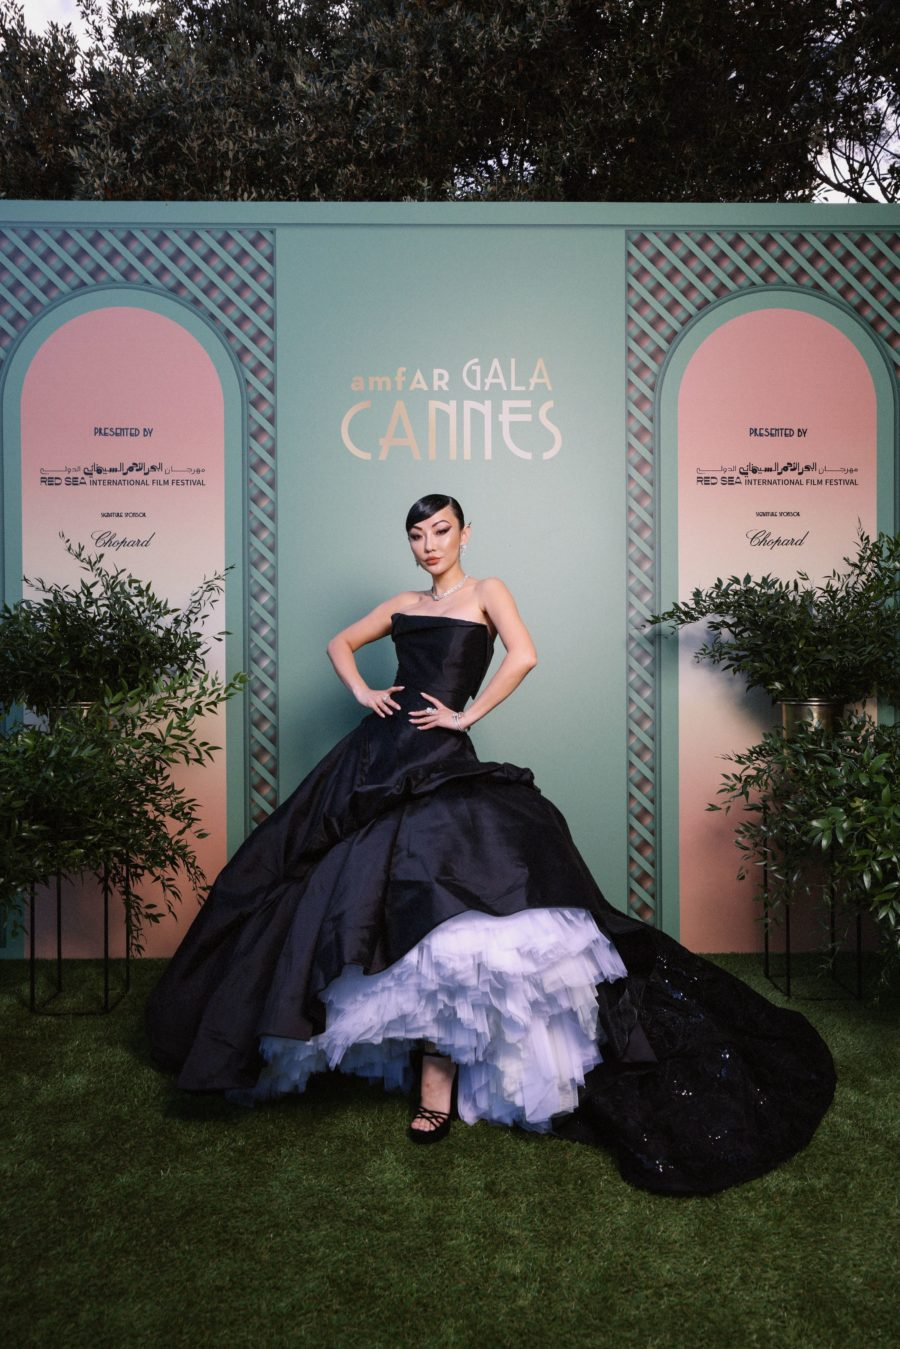 jessica wang wearing a black strapless, a line tulle dress featuring Nicolas Jebran at the cannes film festival 2021 // Jessica Wang - Notjessfashion.com